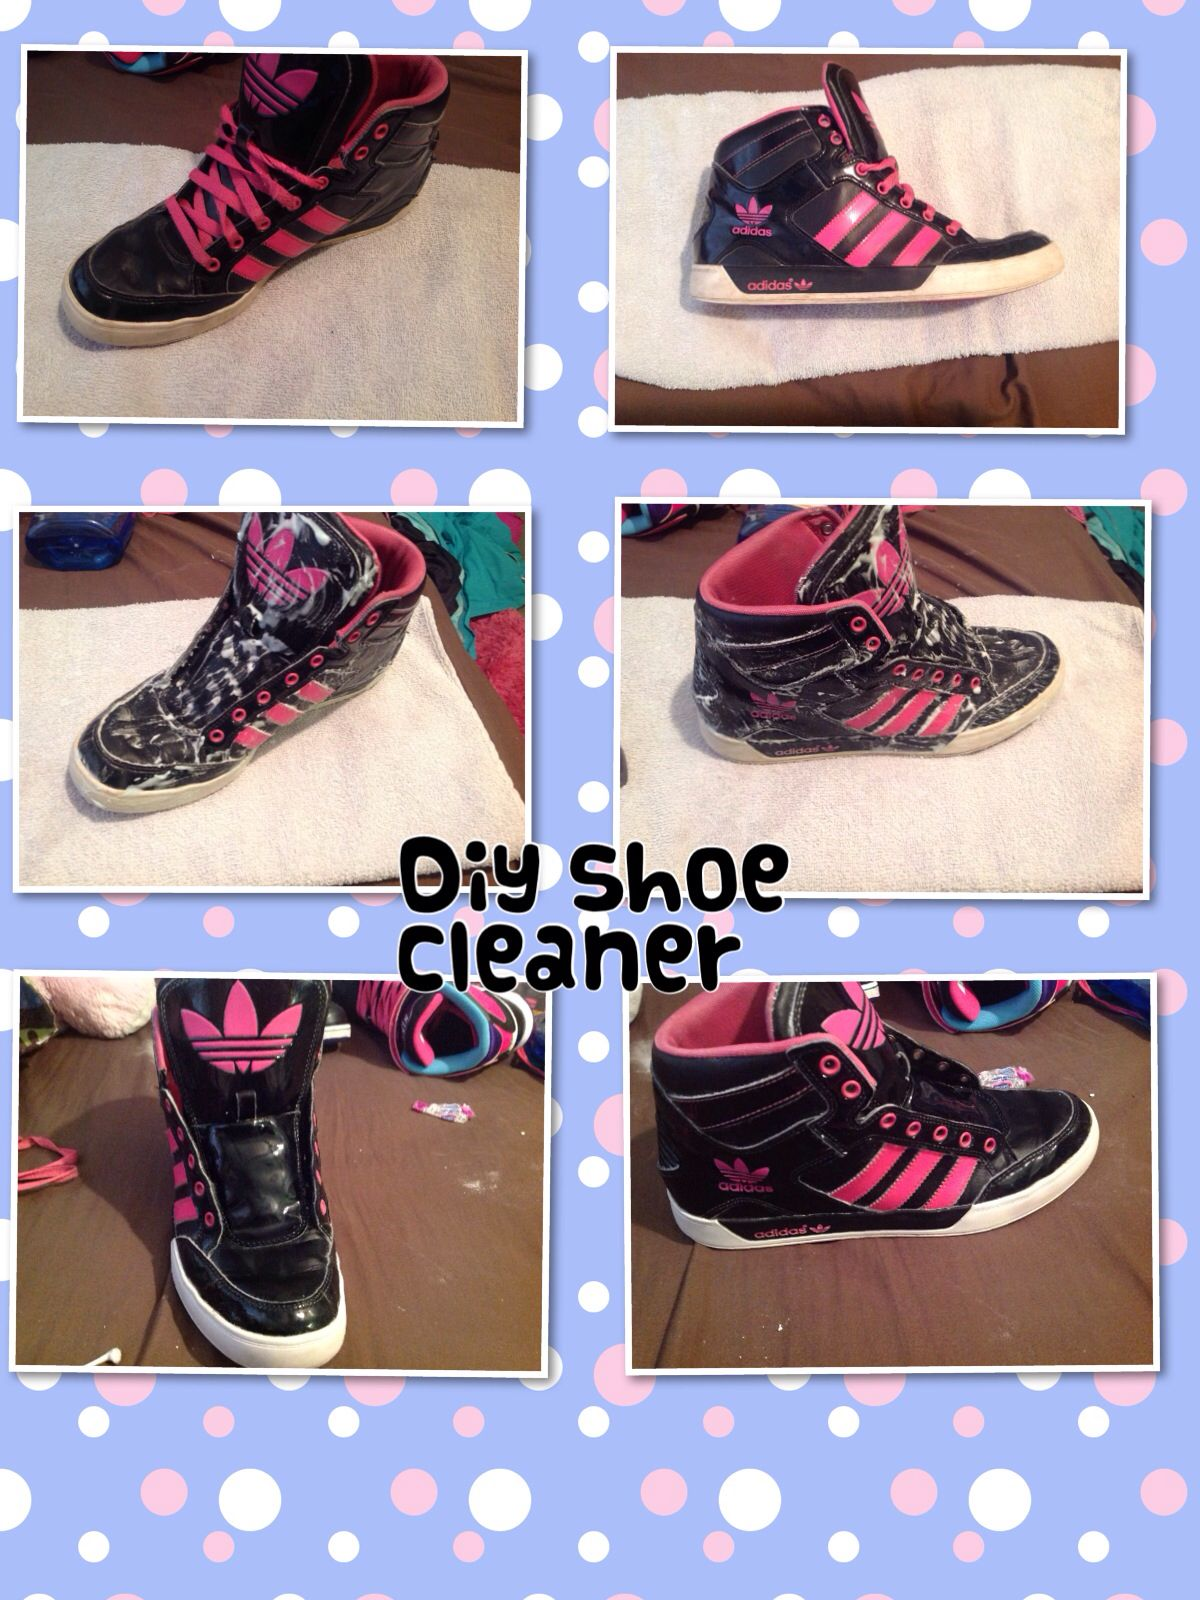 682f0f64ccc296 Diy shoe cleaner  1 2 tbs dawn dish soap 1 tbs baking soda 1 tbs hydrogen  peroxide. After rubbing on shoes (I used a toothbrush) wait 15-20 minutes  and wash ...